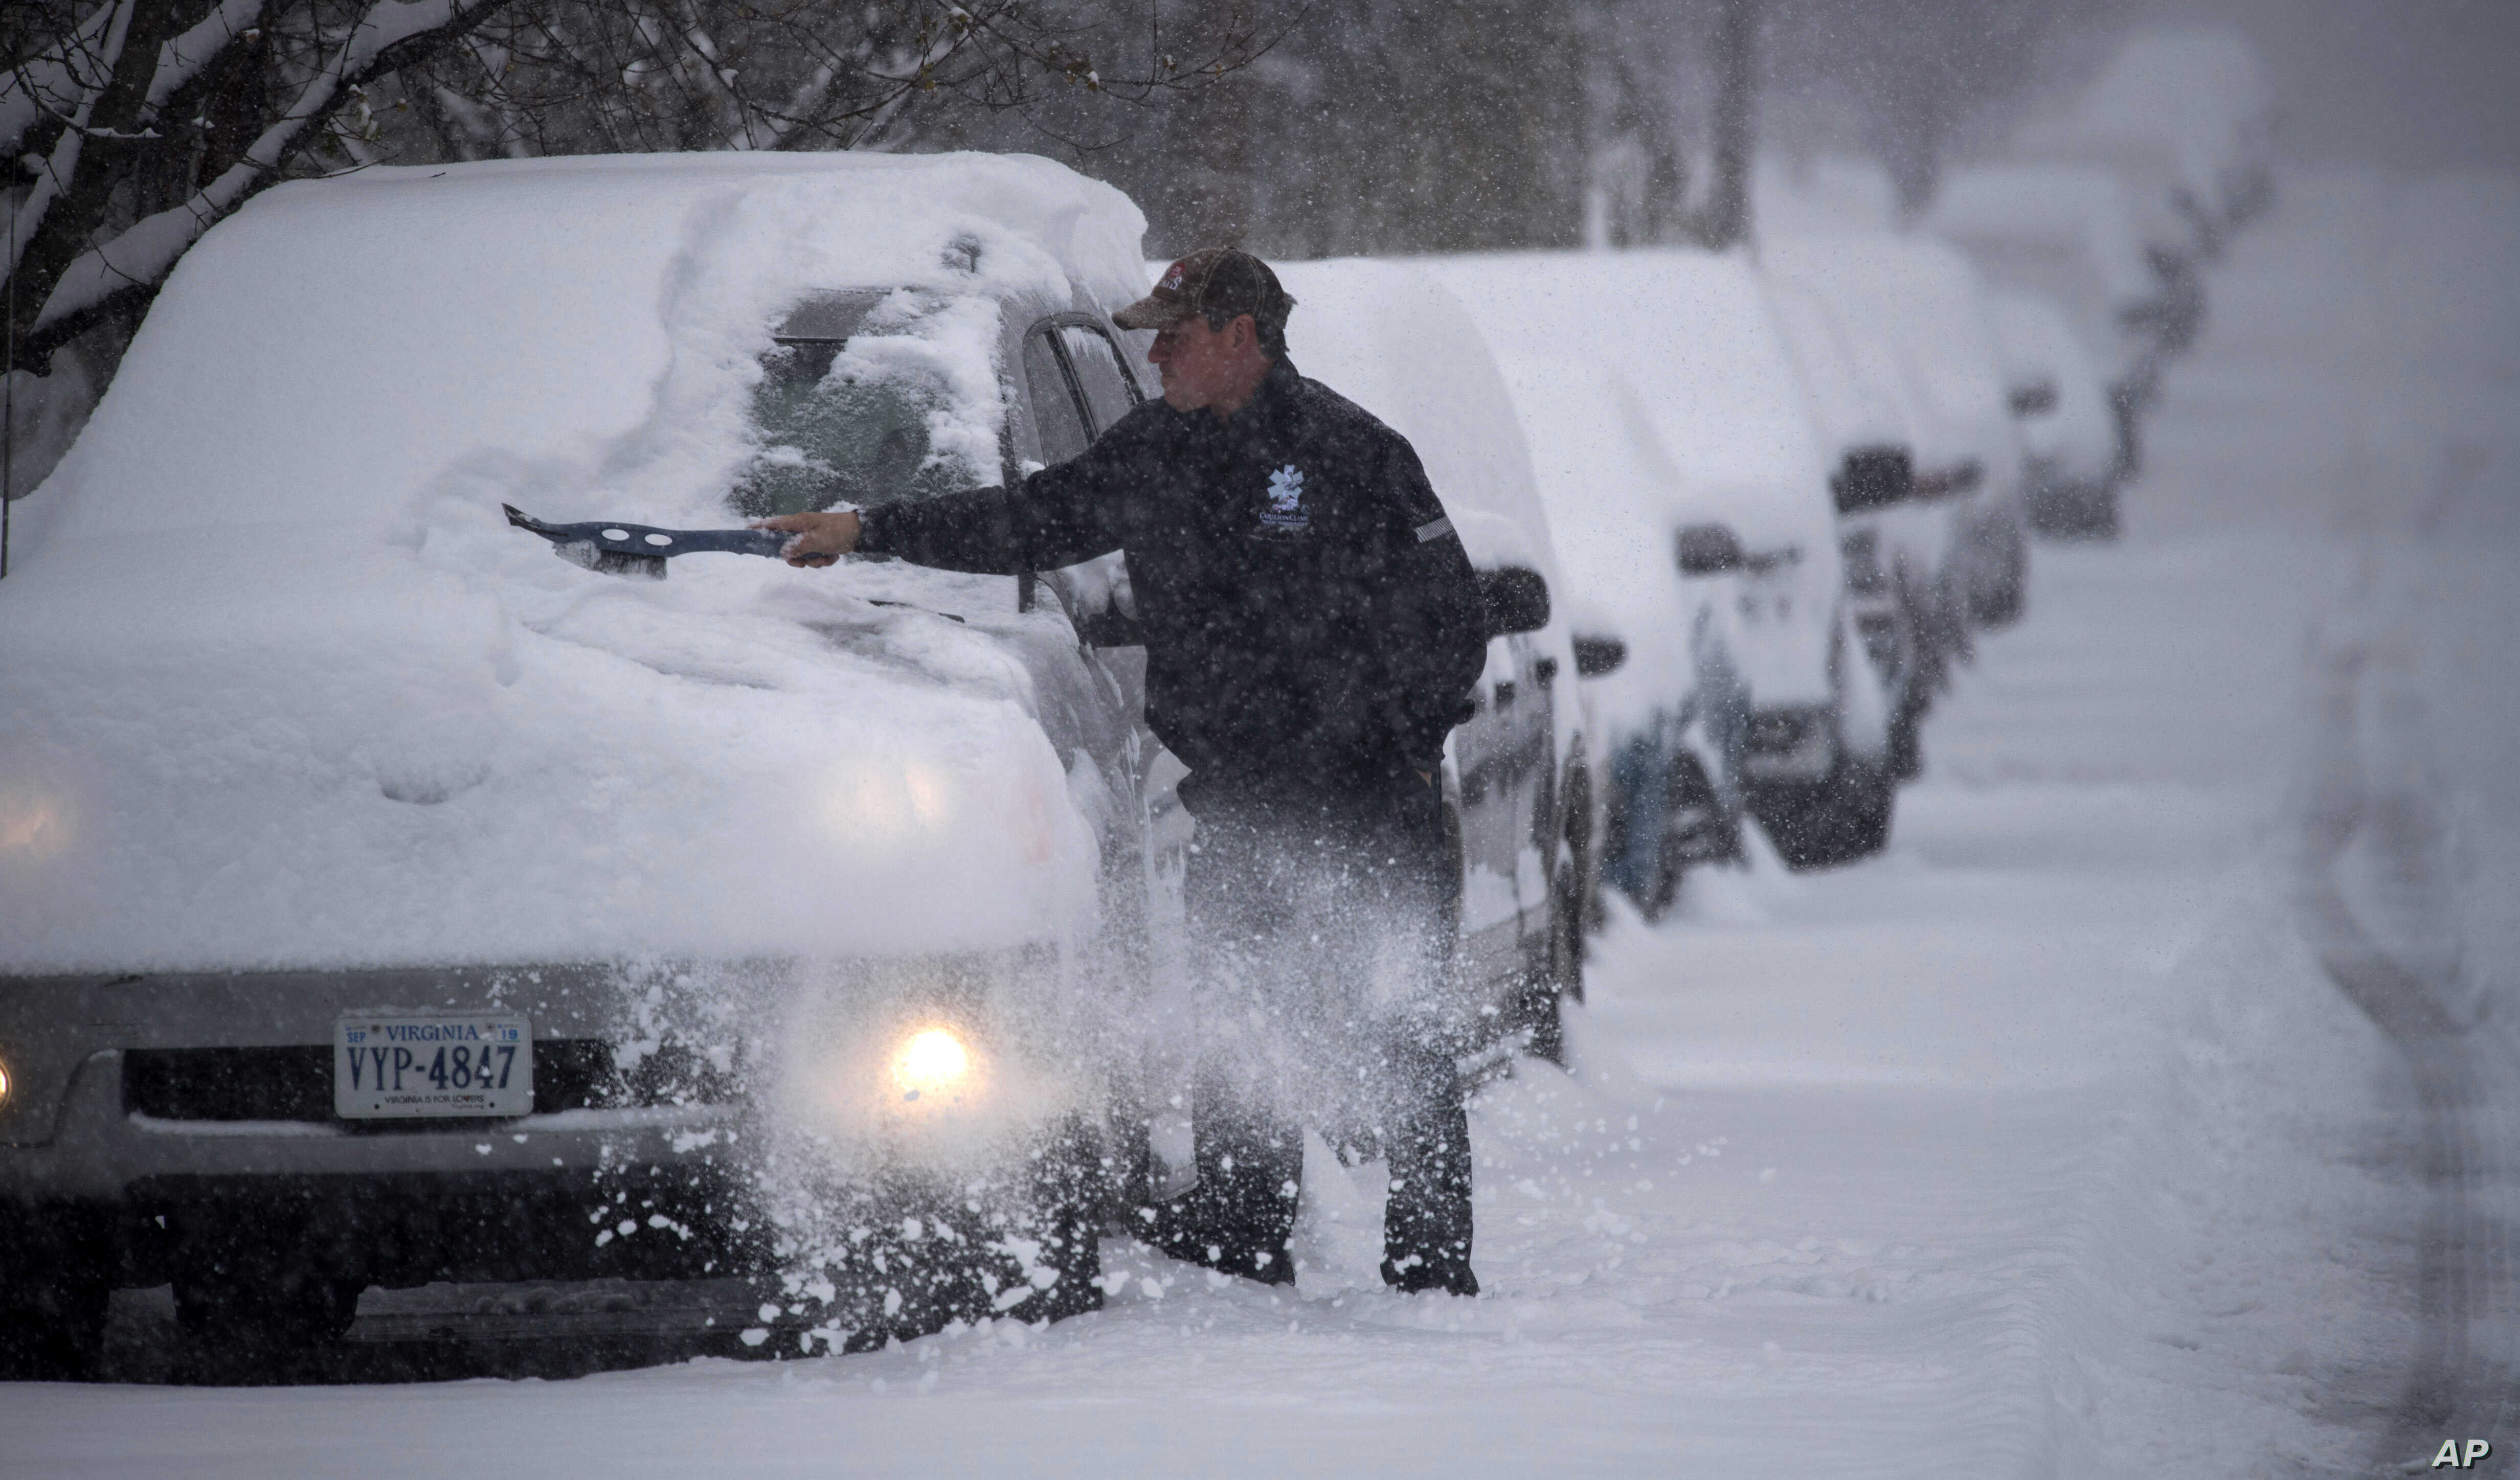 Russ Sprinkel removes snow from his vehicle on Washington Avenue in Roanoke, Va. as snow continues to fall throughout Southwest Virginia, Sunday, Dec. 9, 2018.